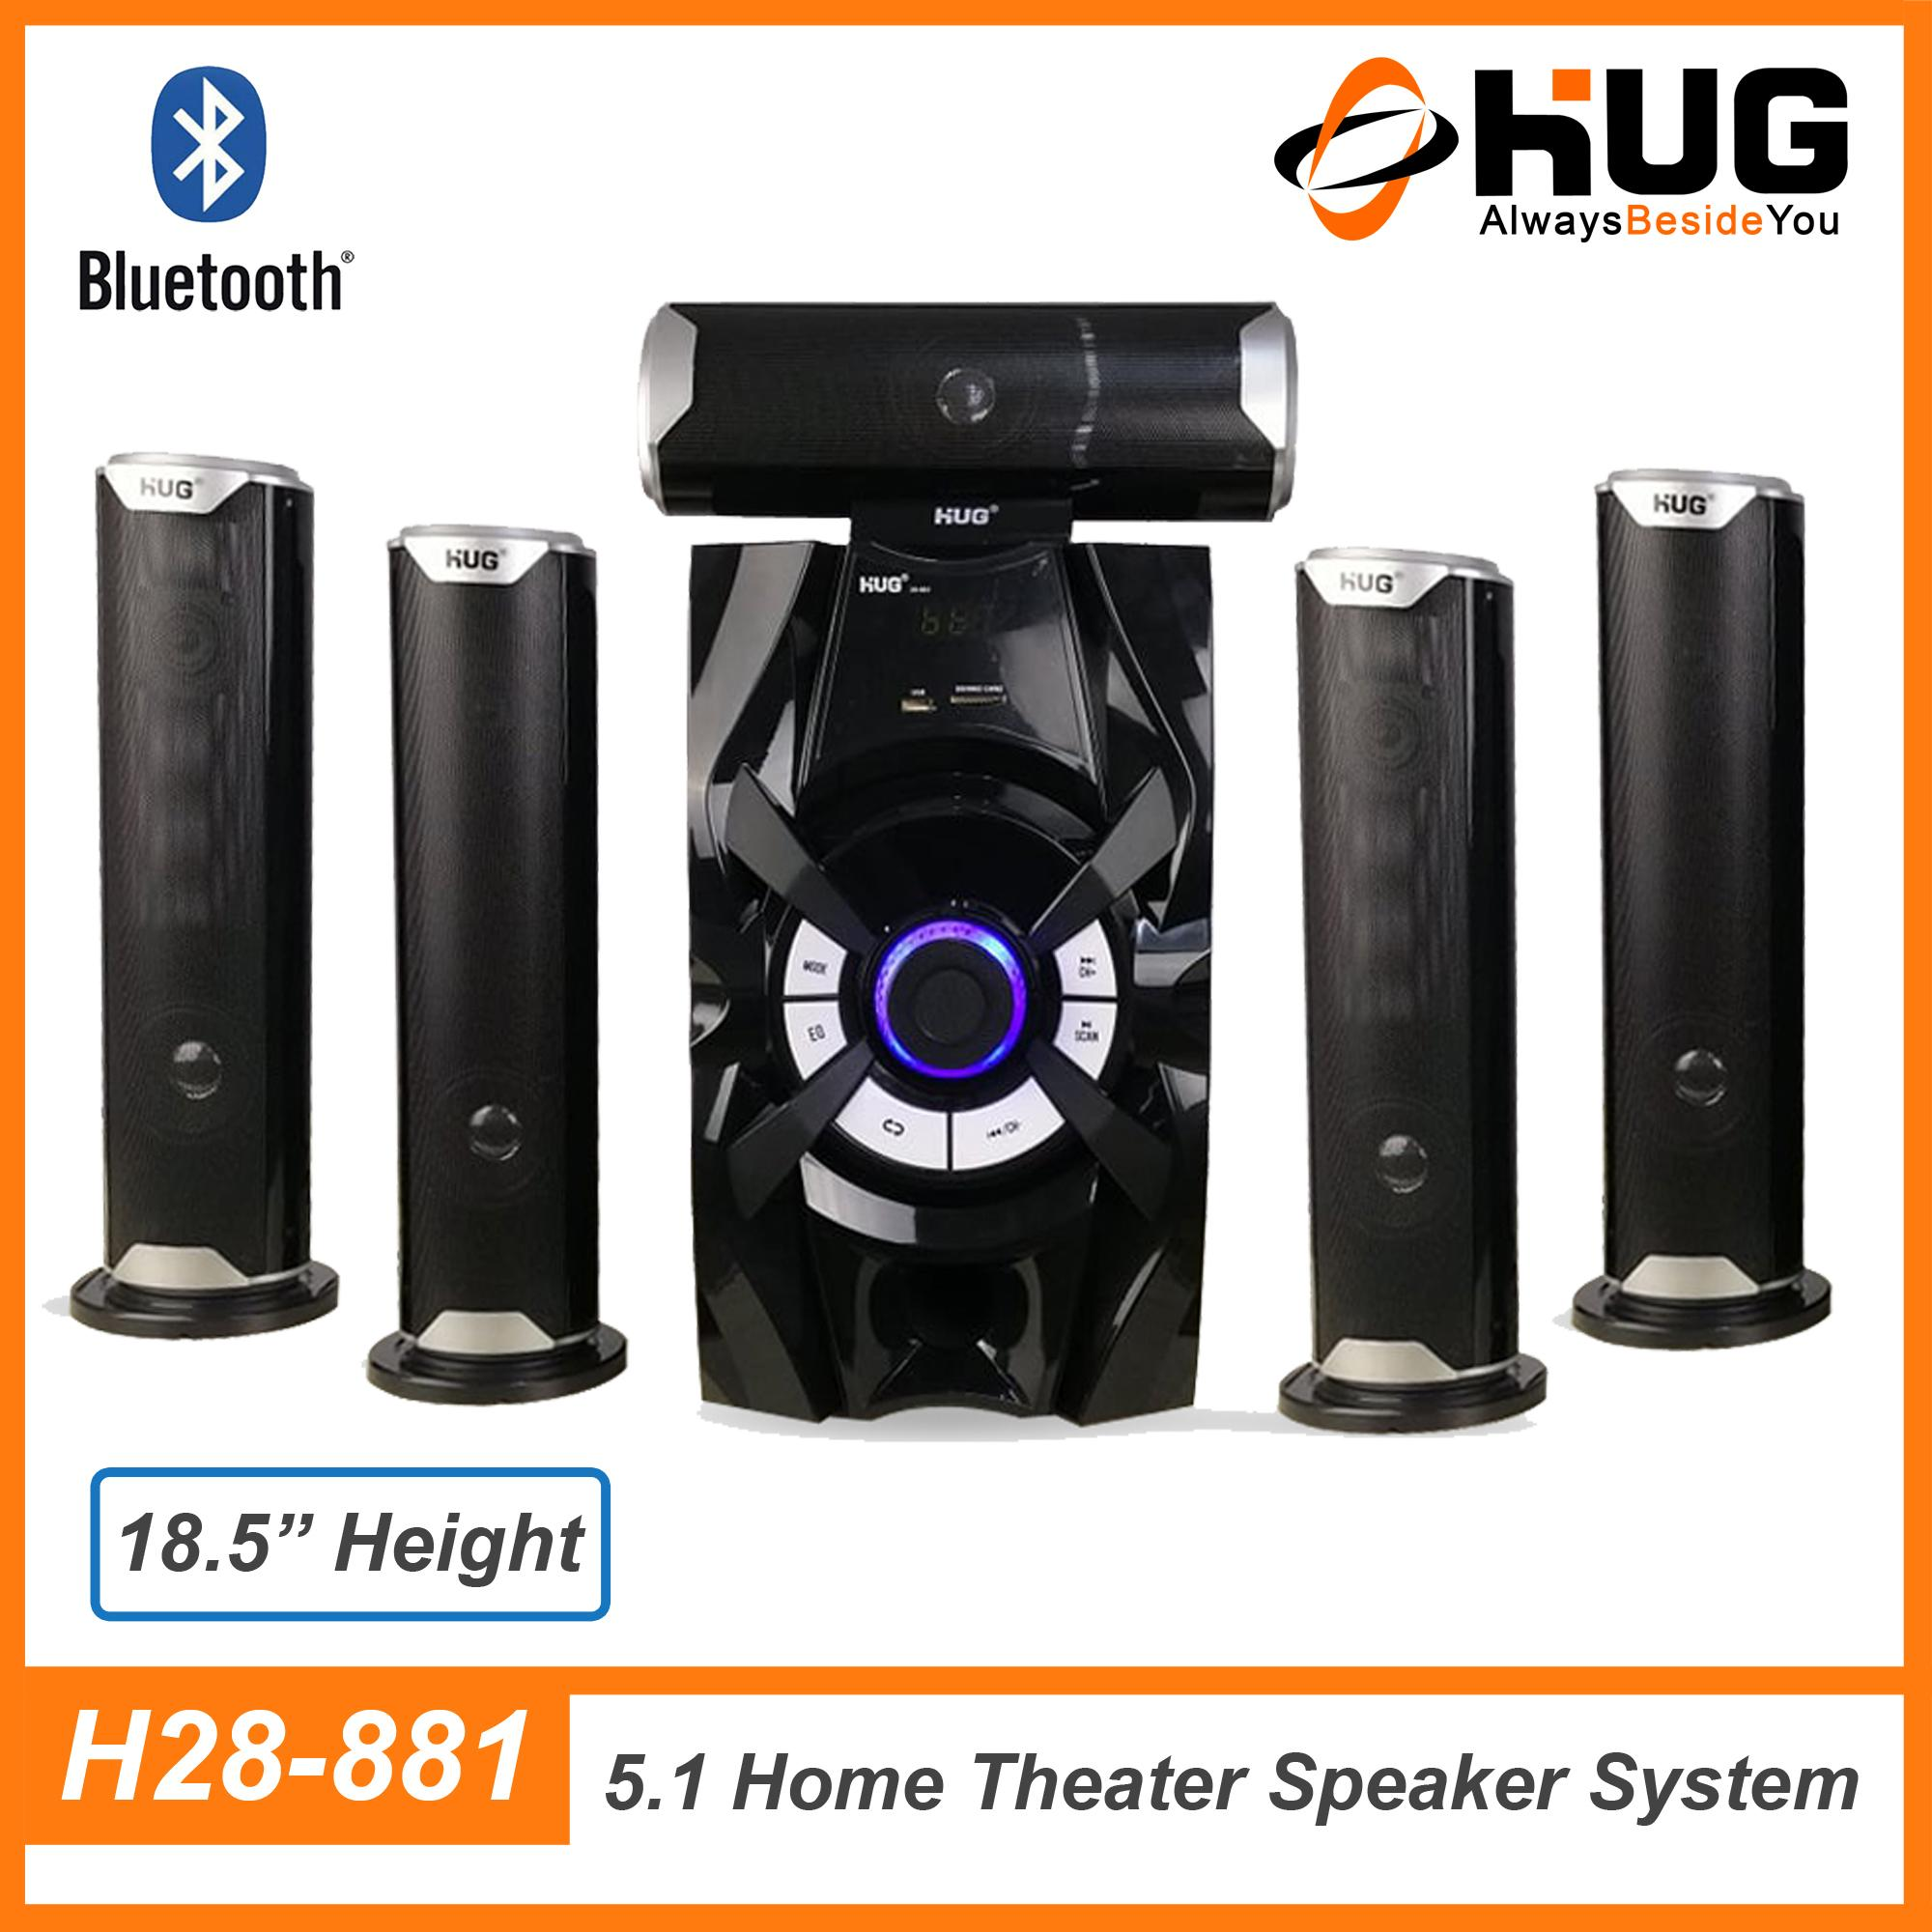 Hug H28-881 5.1 Bluetooth Home Theater Subwoofer Speaker By Hug Official Store.